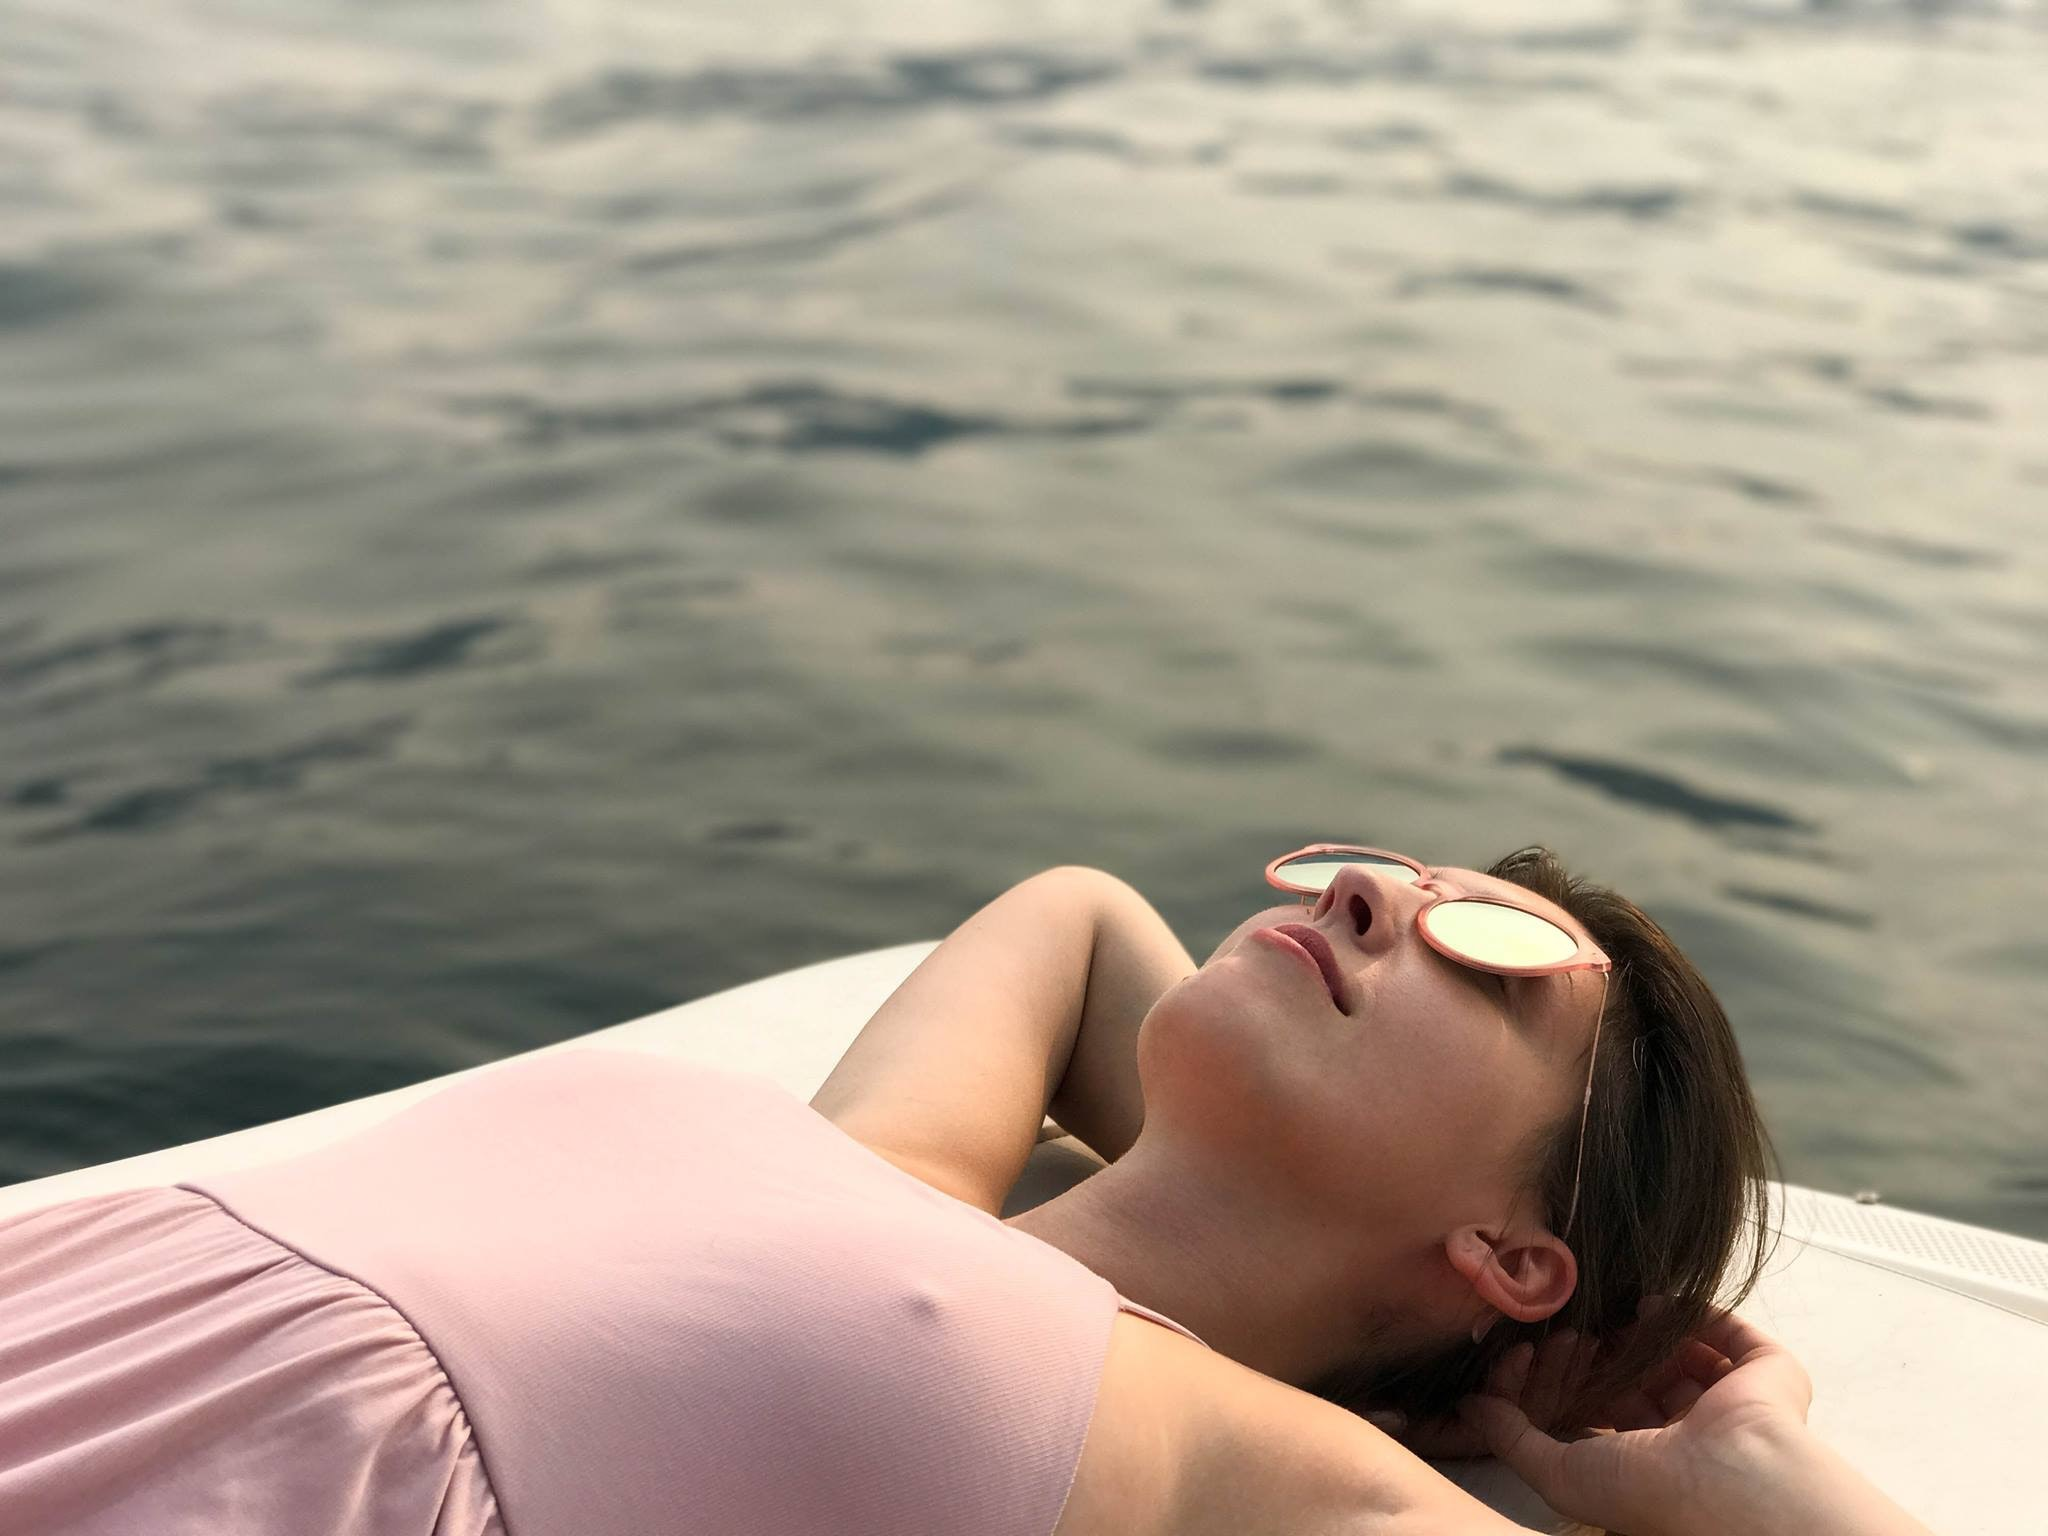 woman laying on white surface near body of water